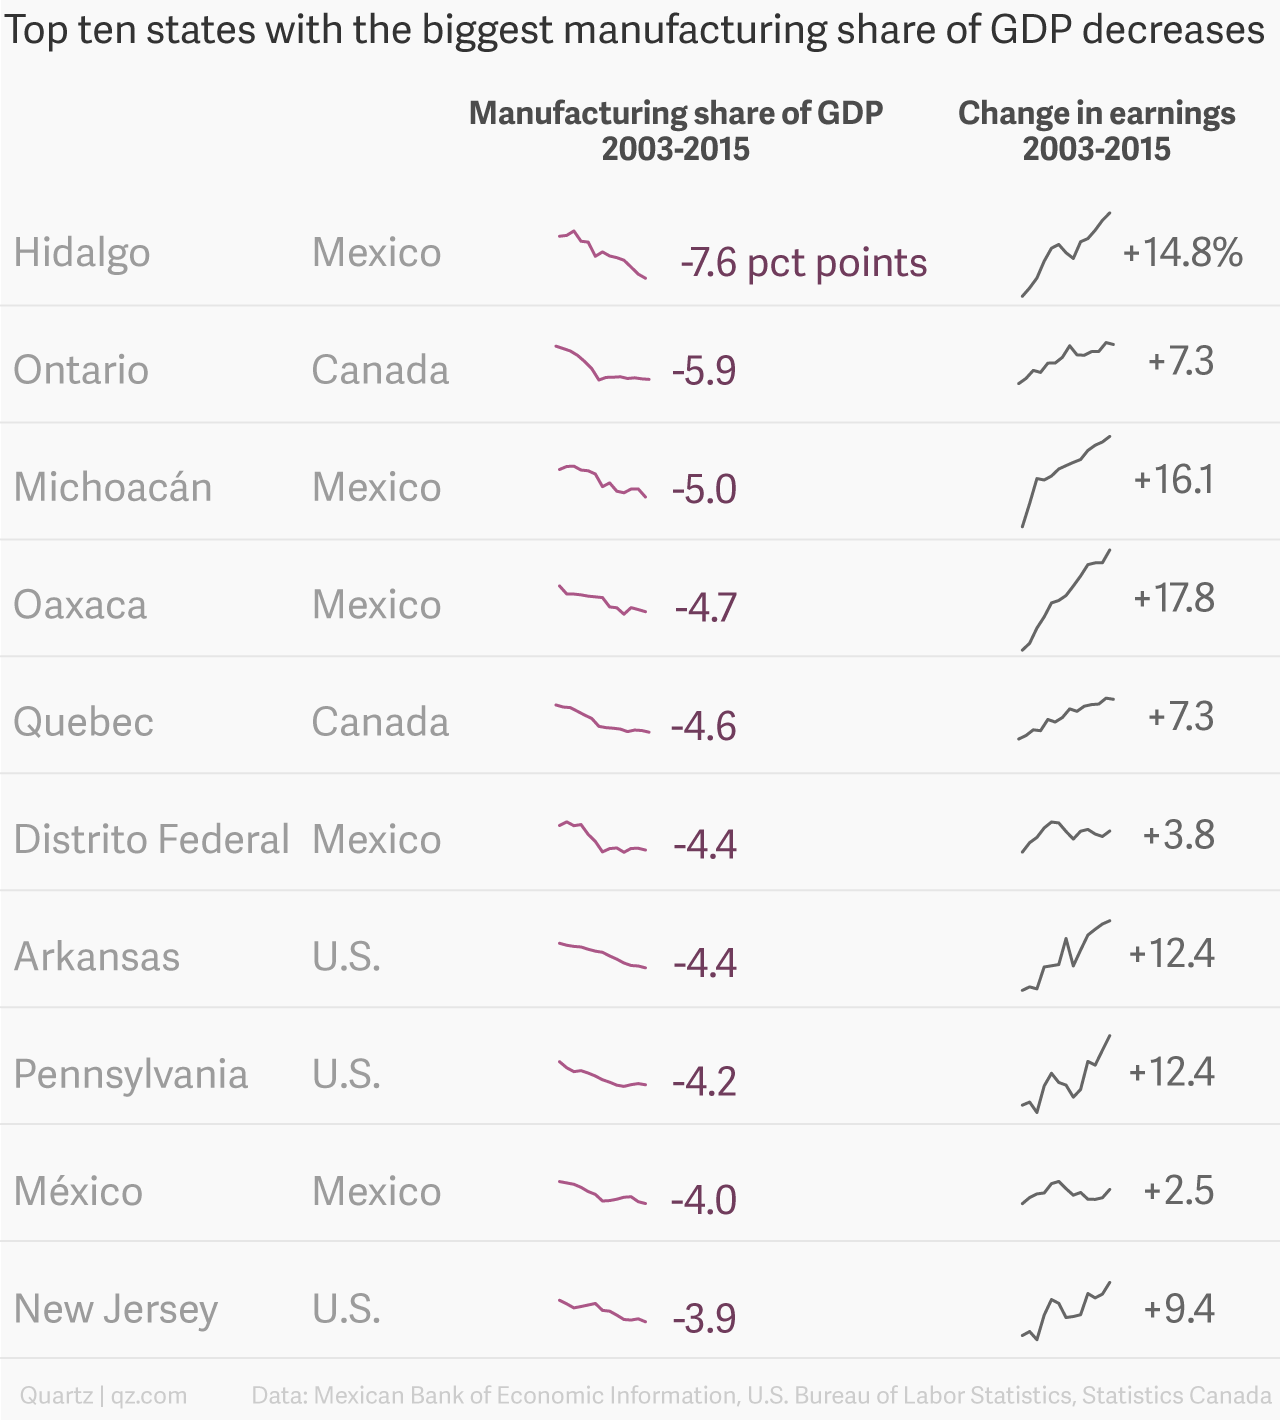 Top 10 states with the biggest decrease in manufacturing share of GDP